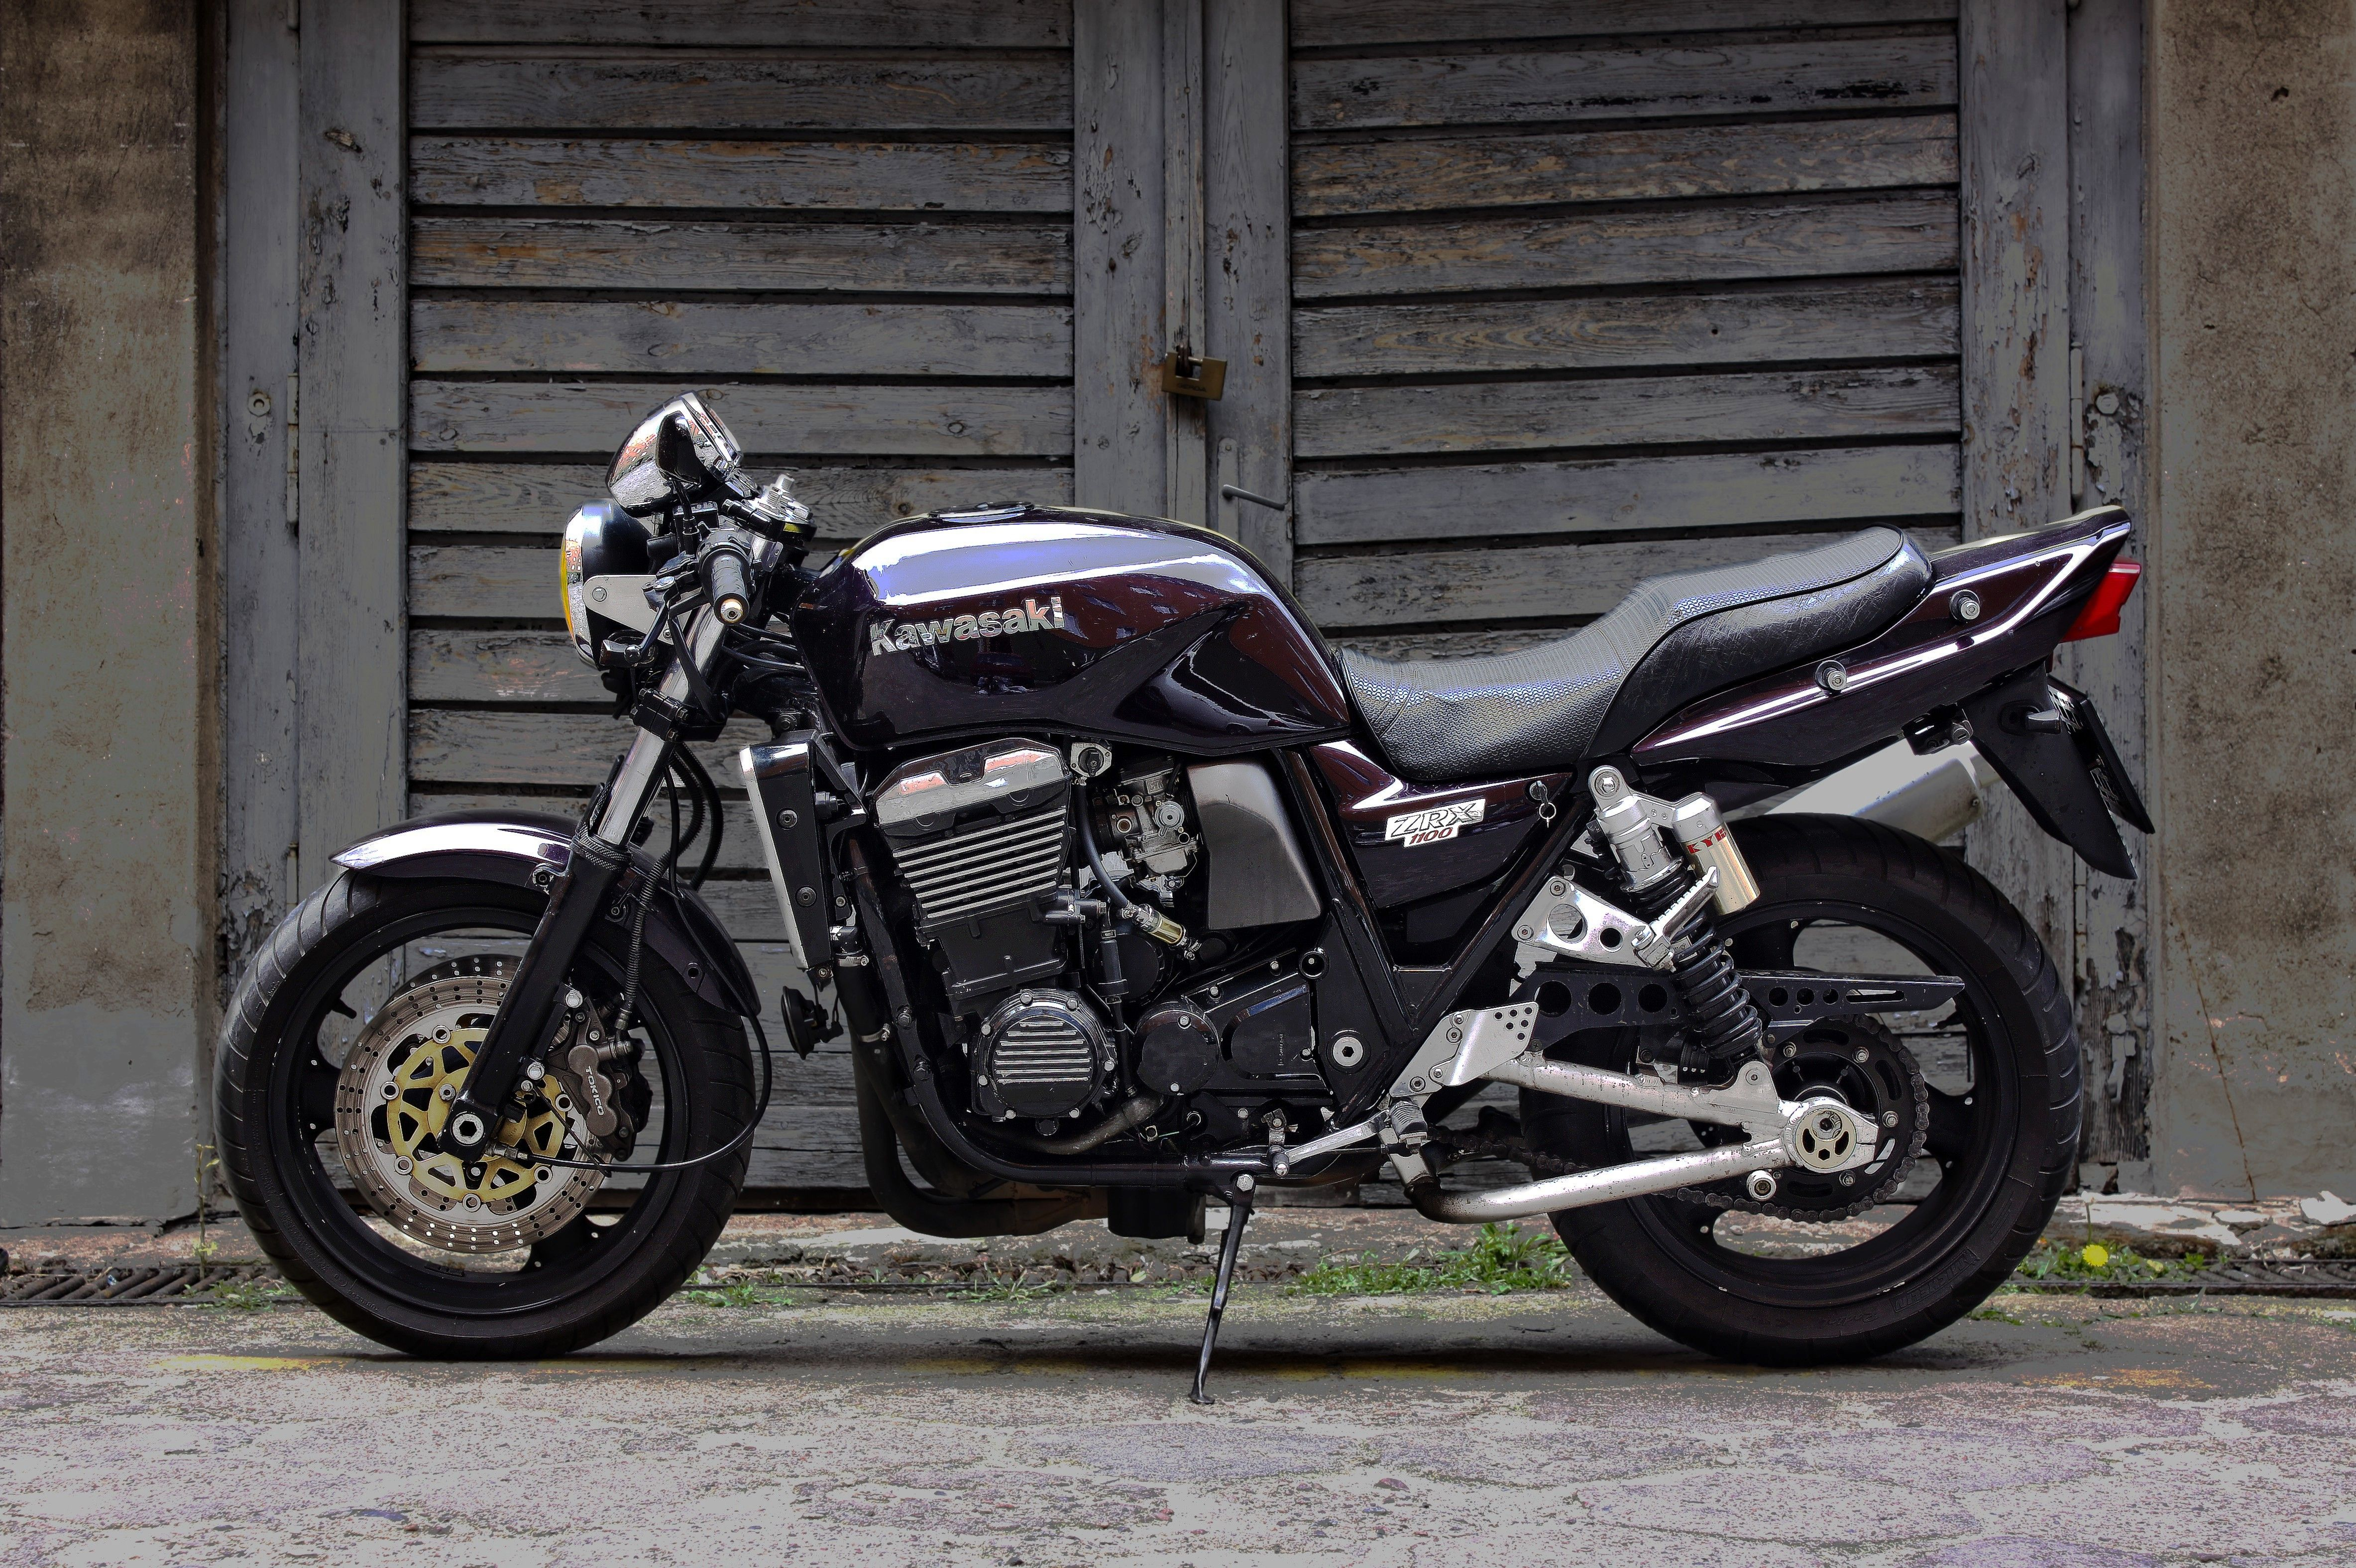 kawasaki zrx 1100 street cafe racer | my projects | pinterest